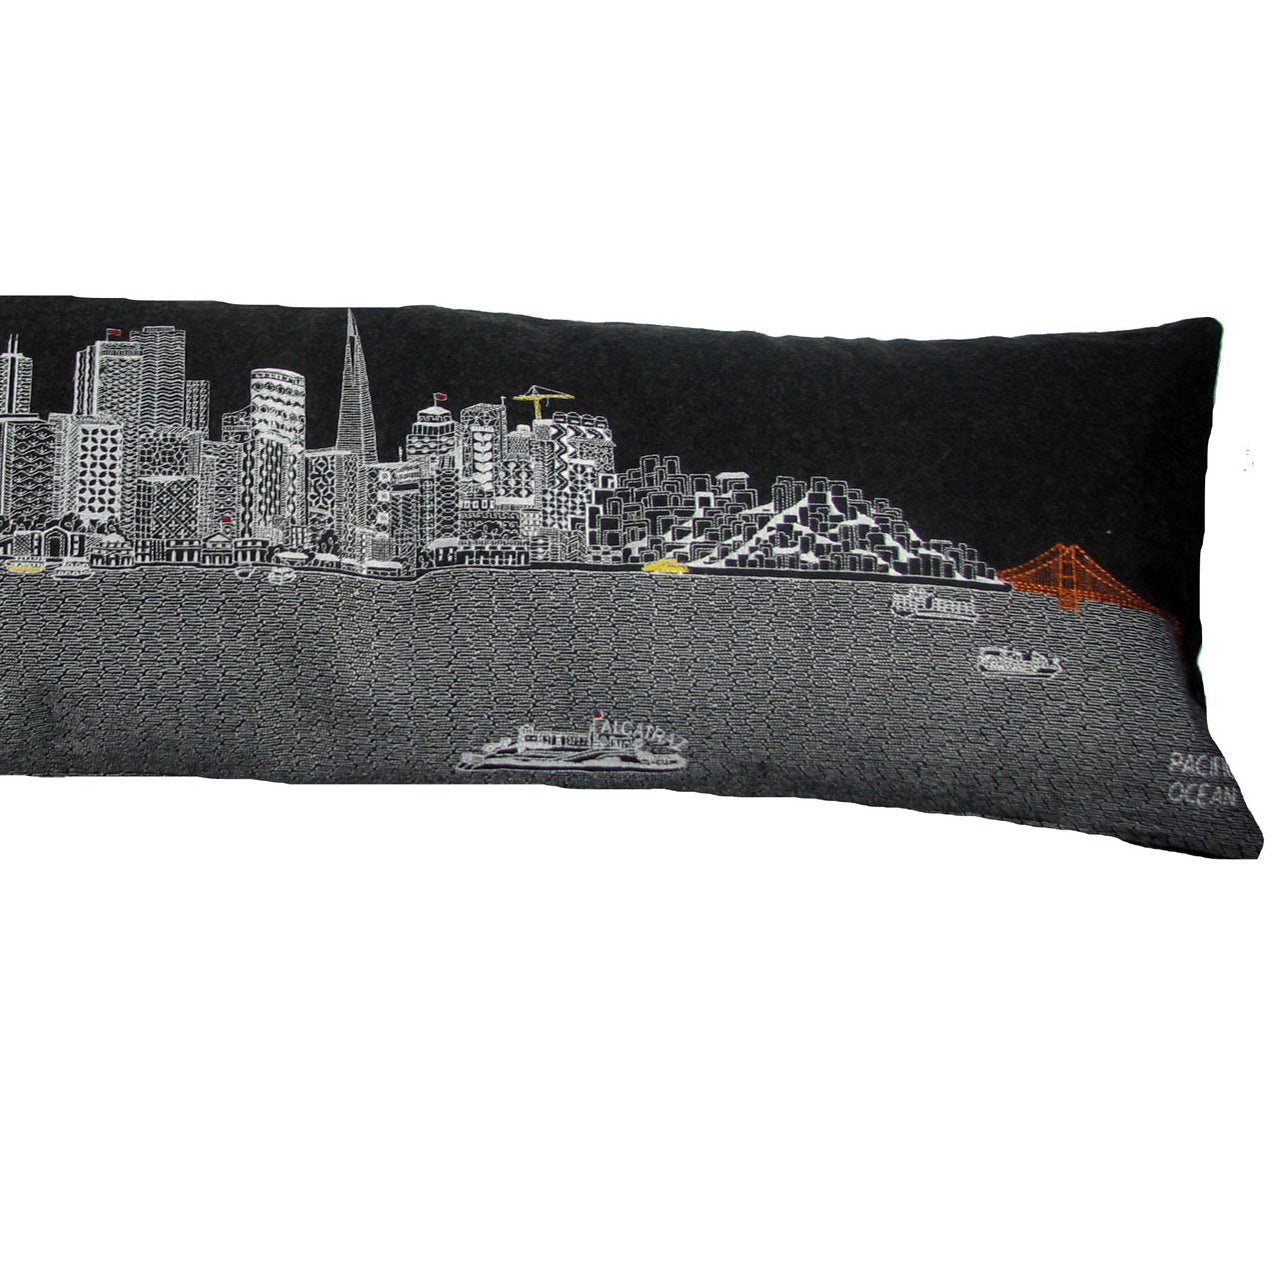 San Francisco Skyline Pillow